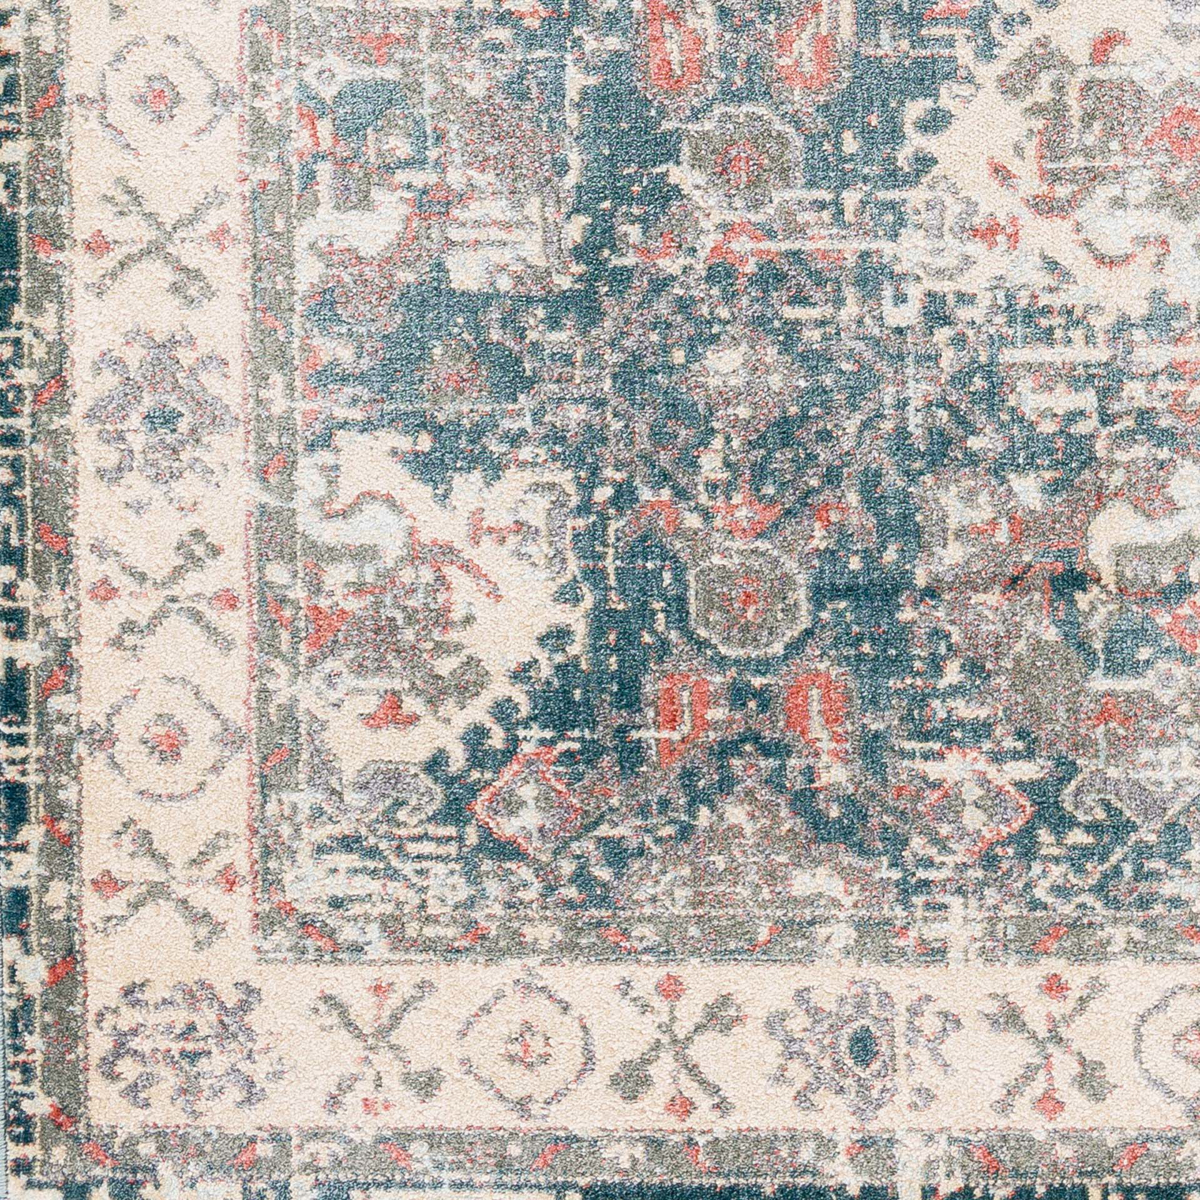 Neutral machine made Egyptian area rug with beige, green and pink accents	- Close up